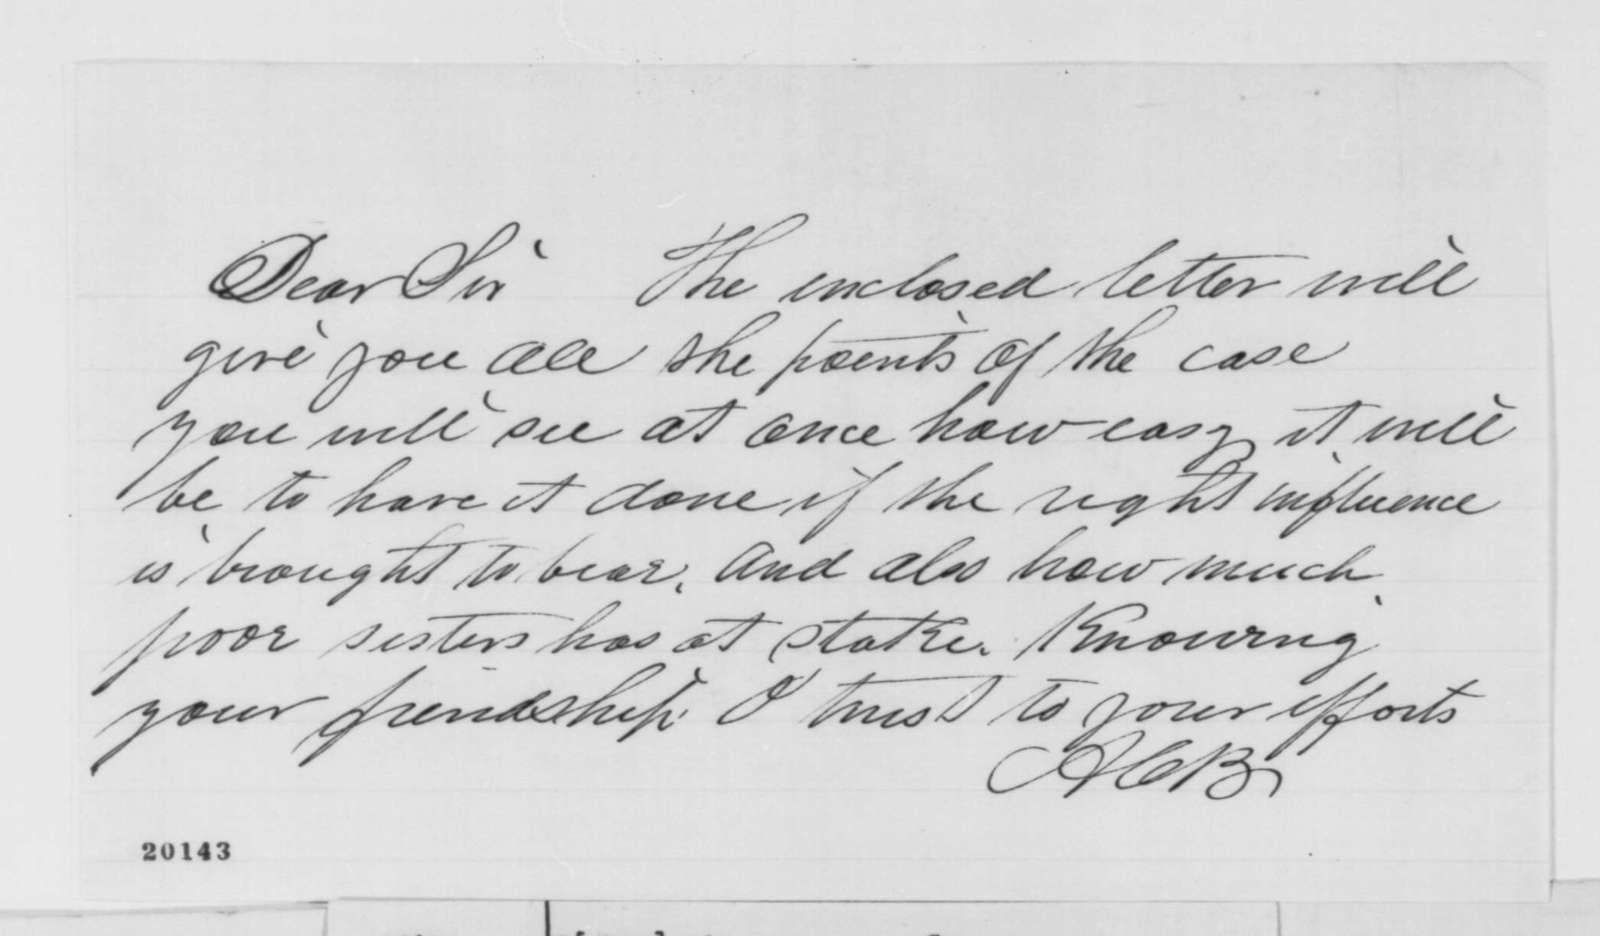 A. C. Baker to B. D. Brown, Saturday, December 13, 1862  (Cover letter)